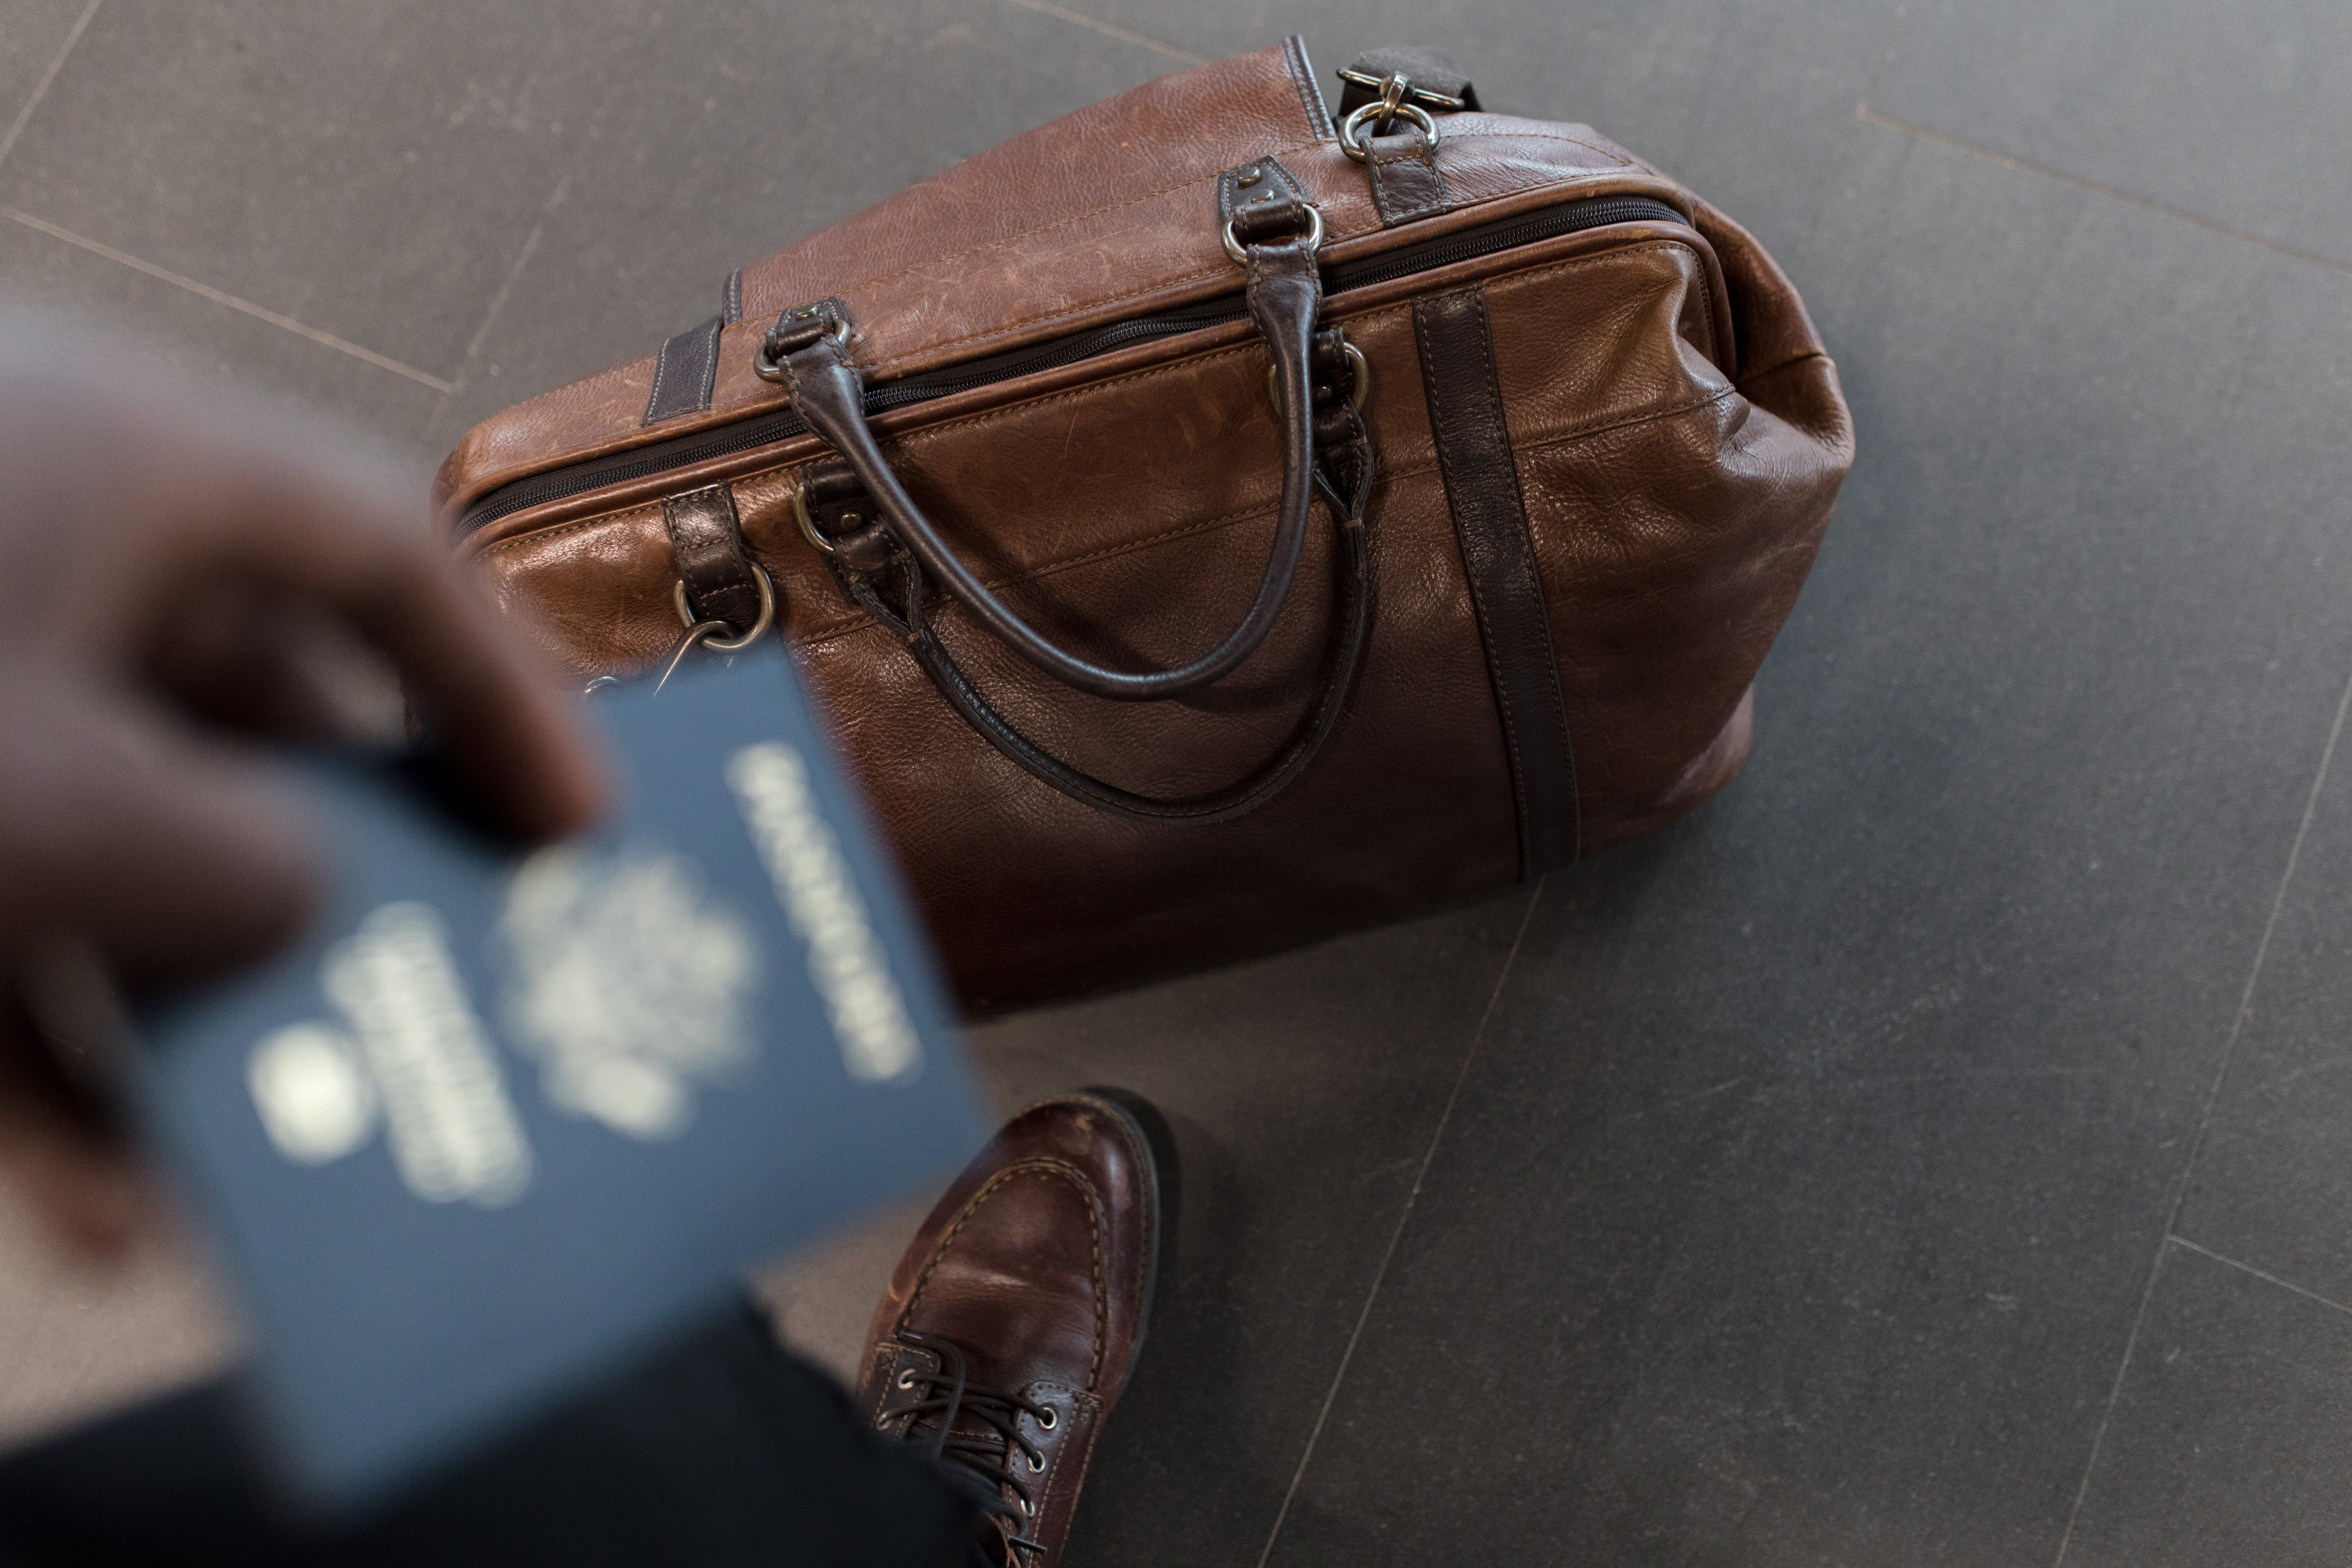 Remove All Old Baggage Tags (Including Bar Code Stubs) To Avoid Lost Or Delayed Luggage